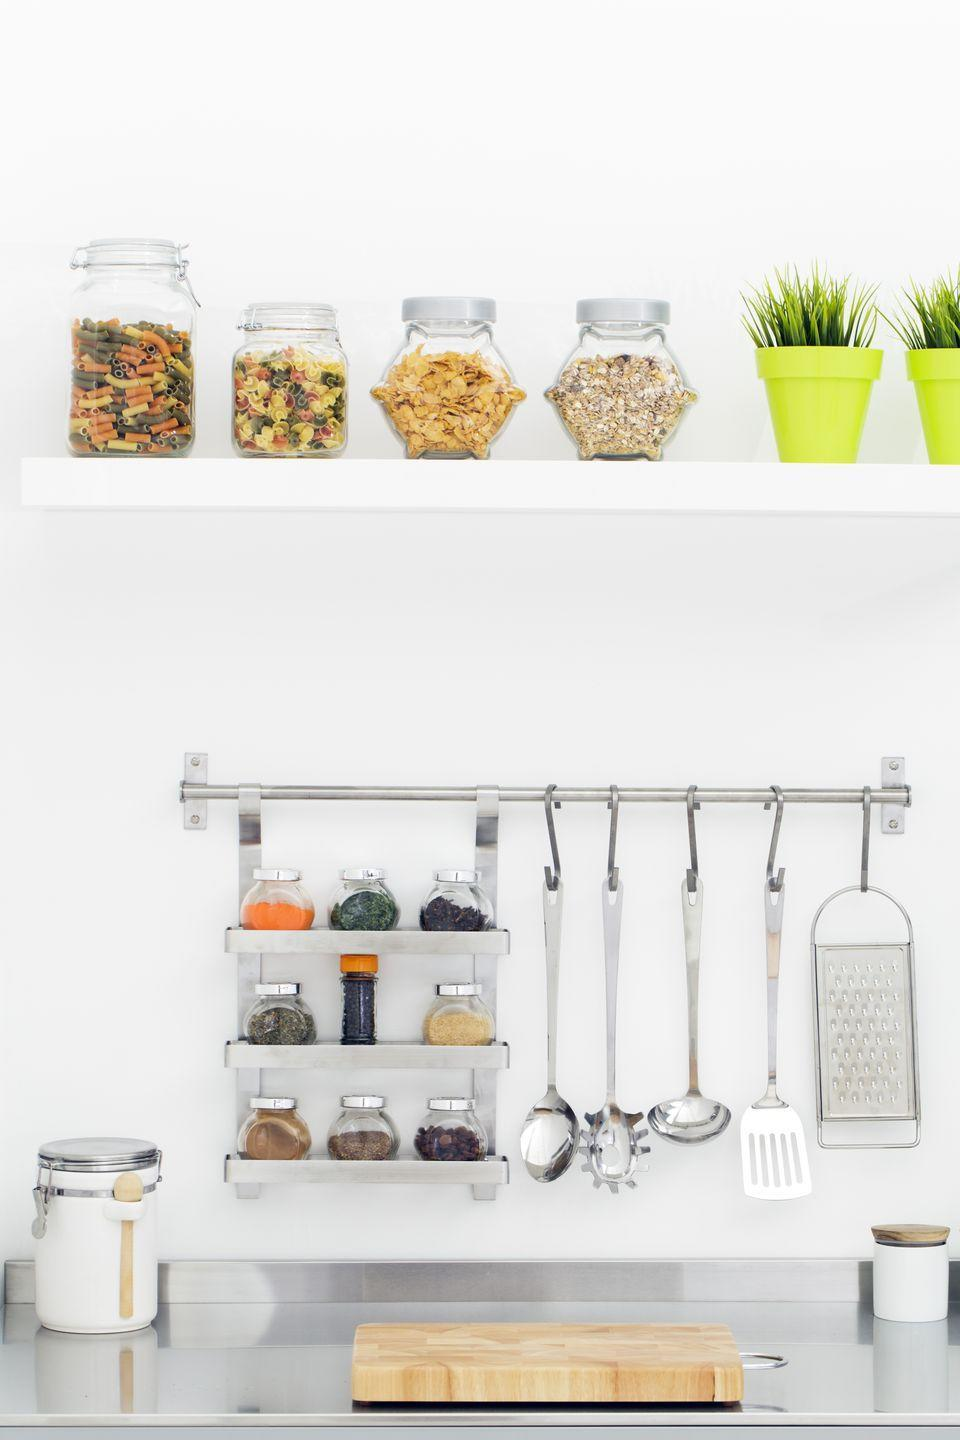 <p>It looks cute (so you won't seeing it every day), and puts towels, measuring spoons, mugs or whatever else you like within easy reach.</p>